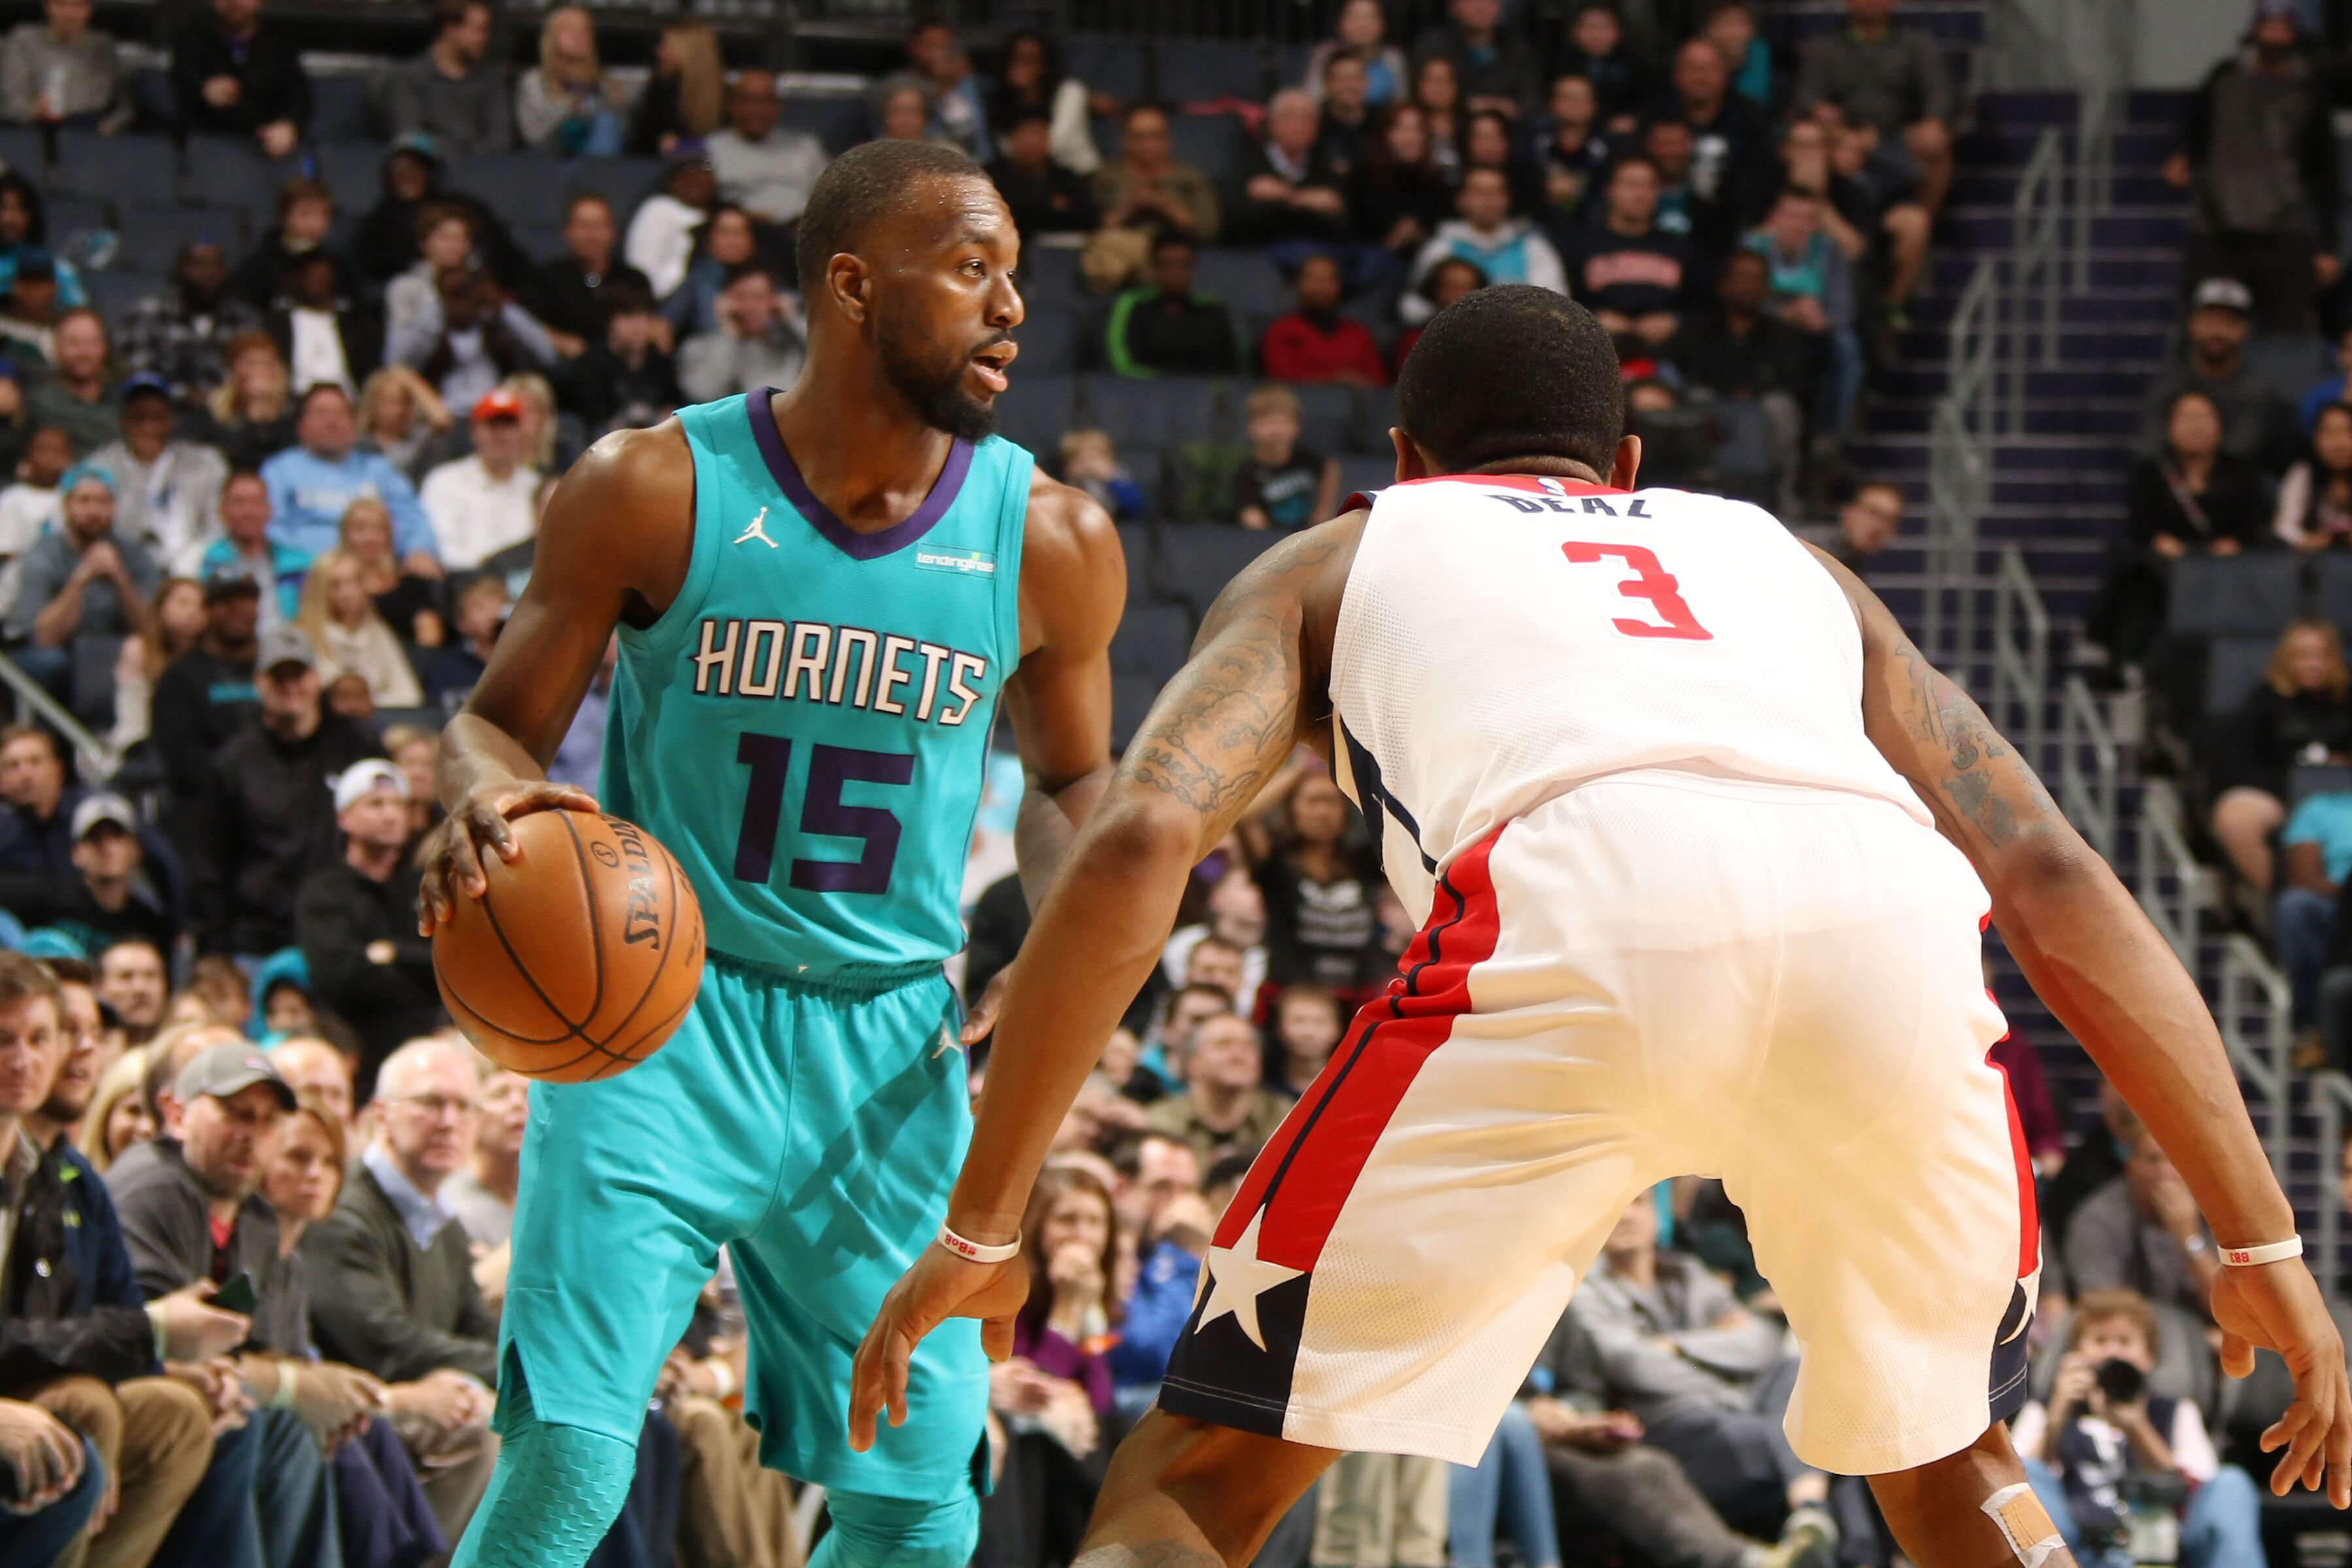 CHARLOTTE, NC - NOVEMBER 22: Kemba Walker